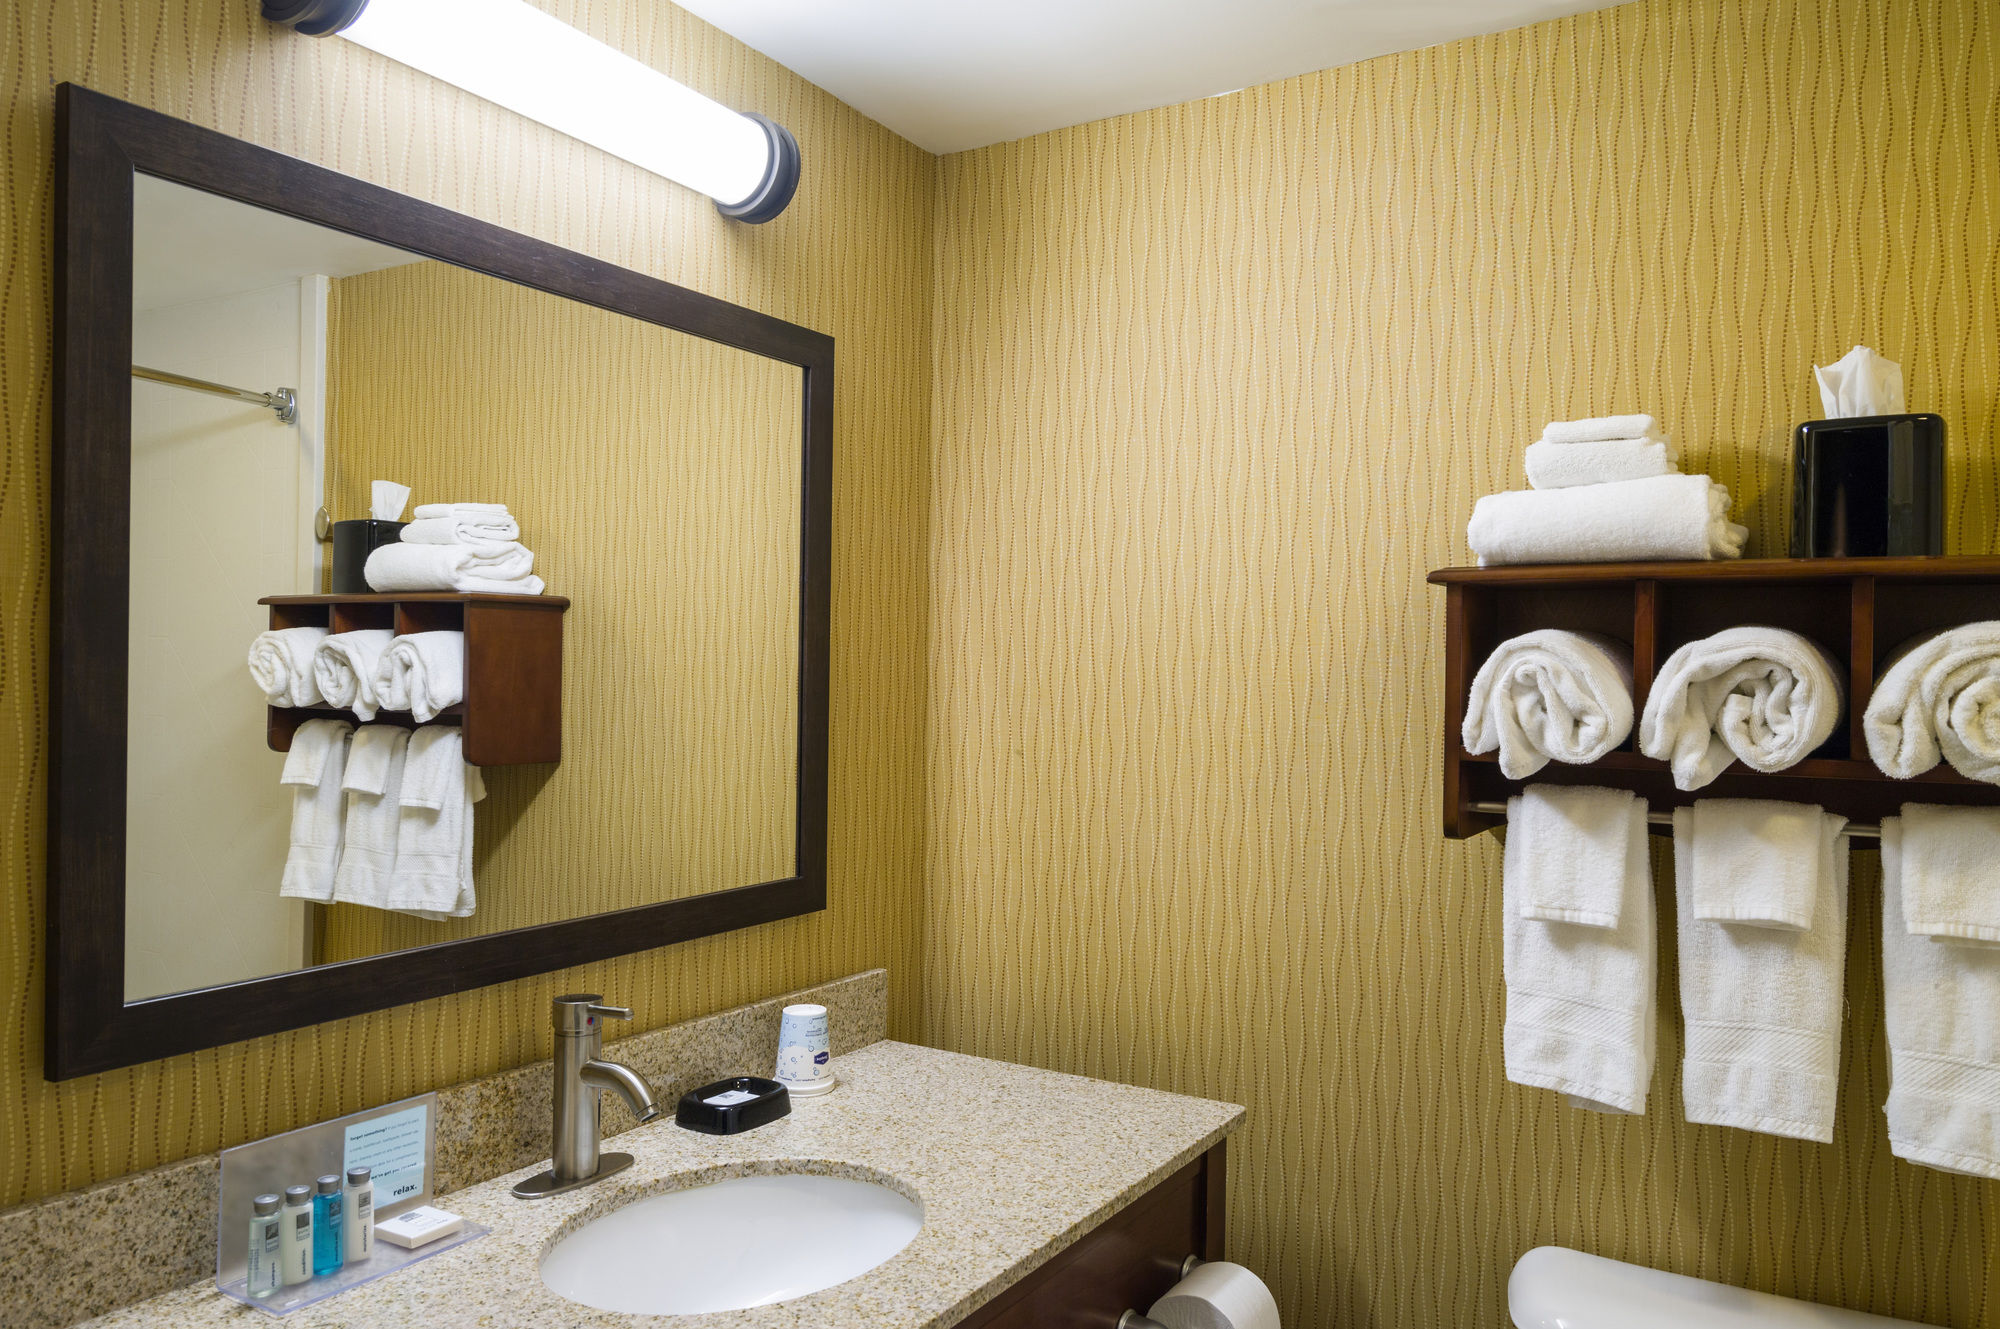 selinsgrove hotel coupons for selinsgrove pennsylvania. Black Bedroom Furniture Sets. Home Design Ideas